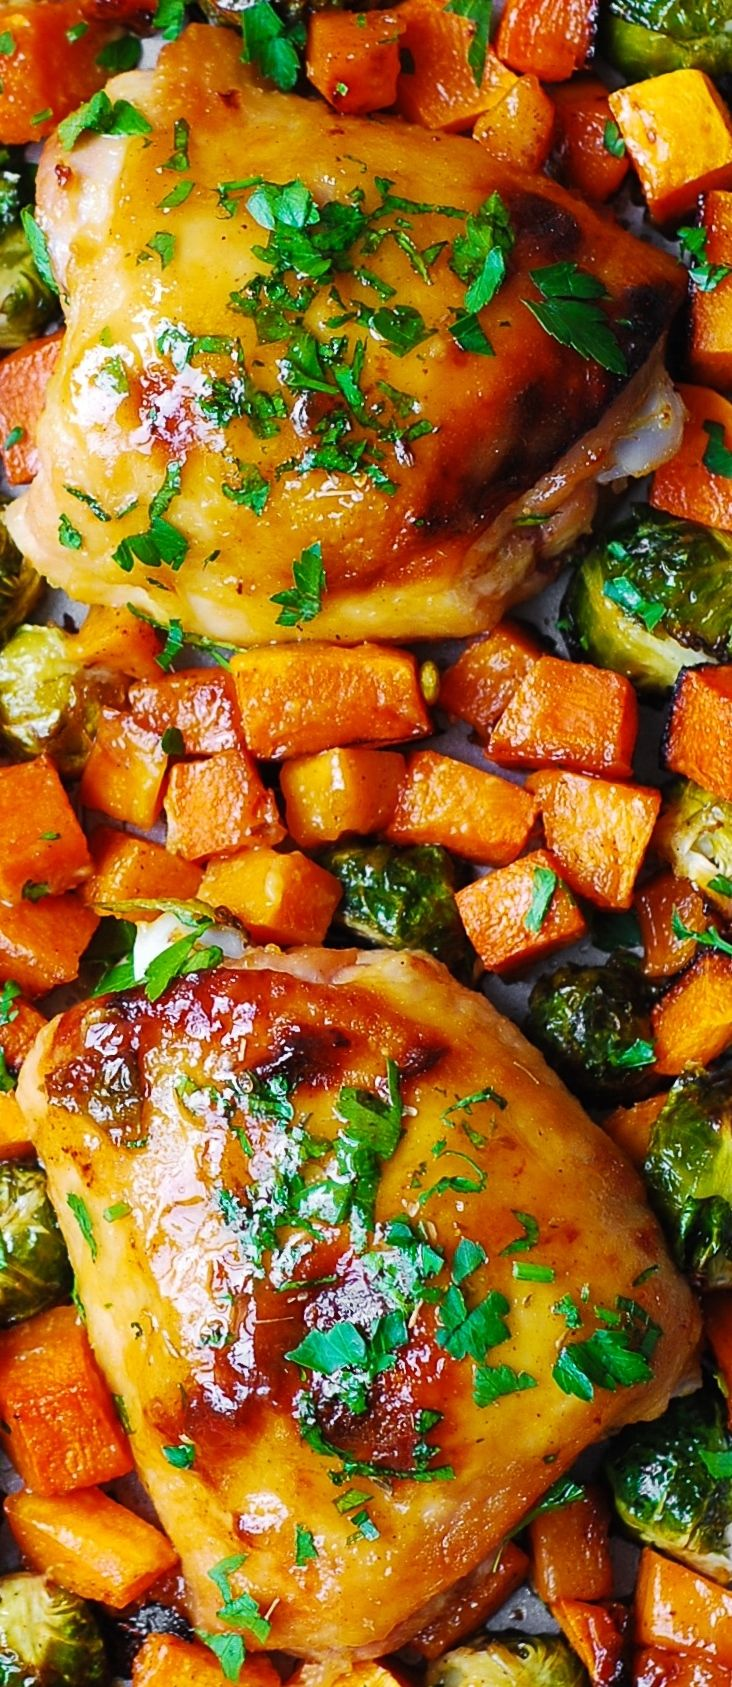 One-Pan Maple-Dijon Chicken with Roasted Butternut Squash and Brussels Sprouts